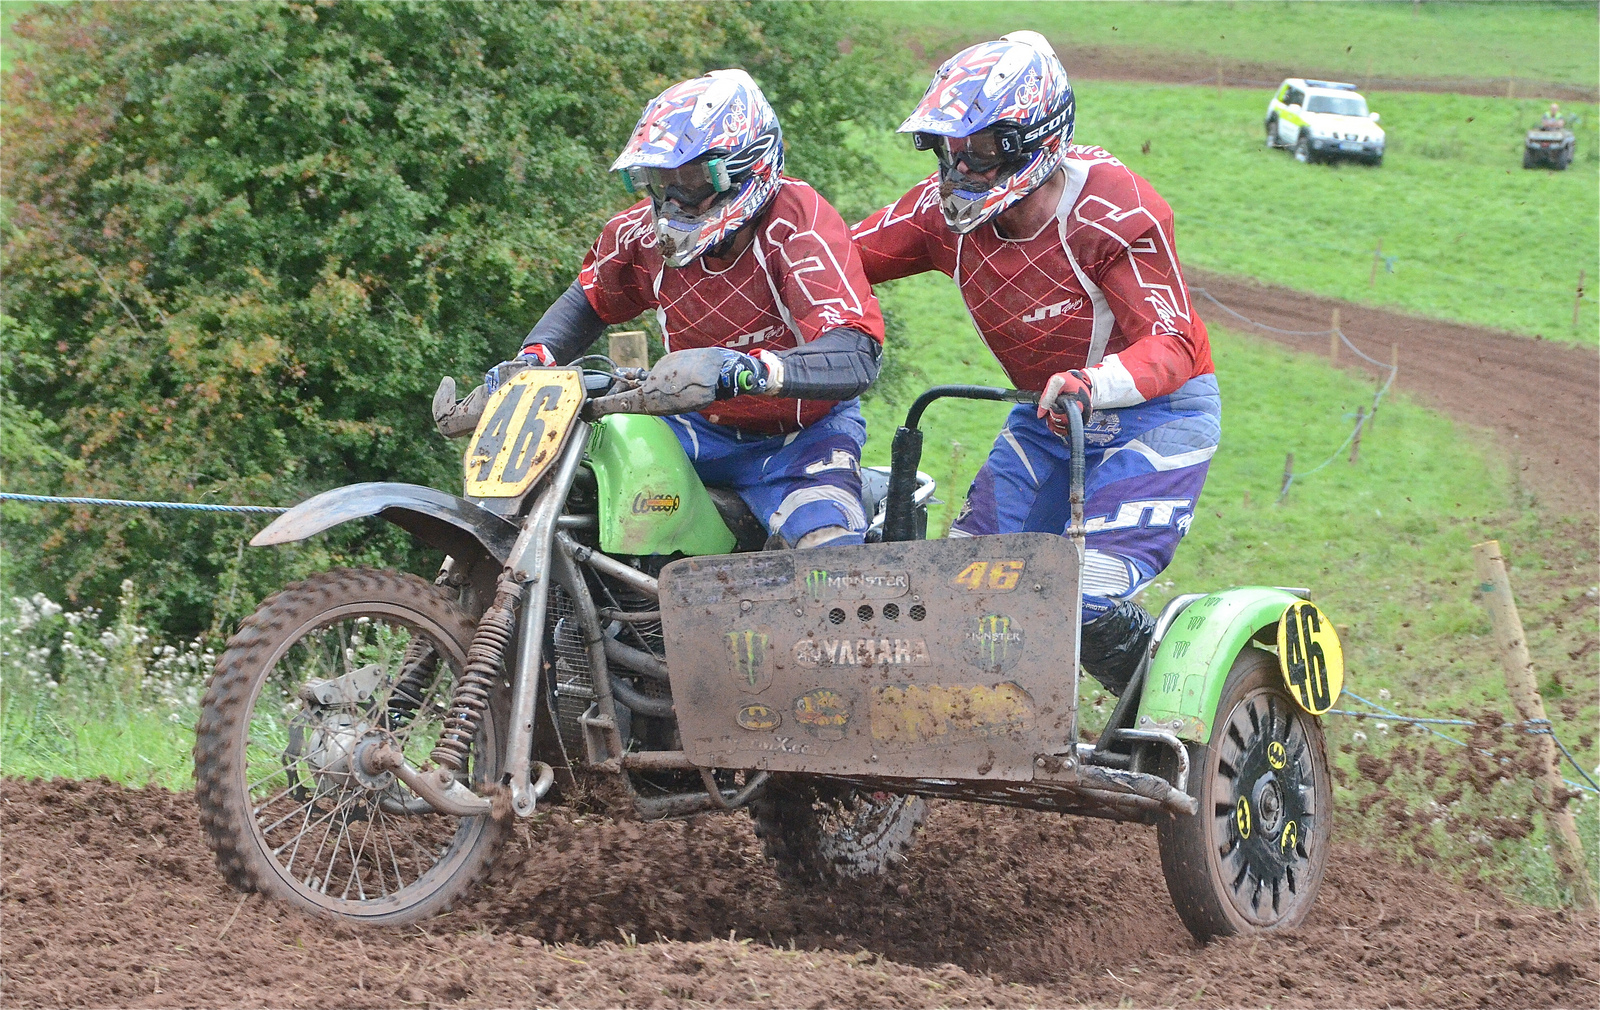 Llanthony Classic Scramble Photos September 2015 classicdirtbikerider.com..54